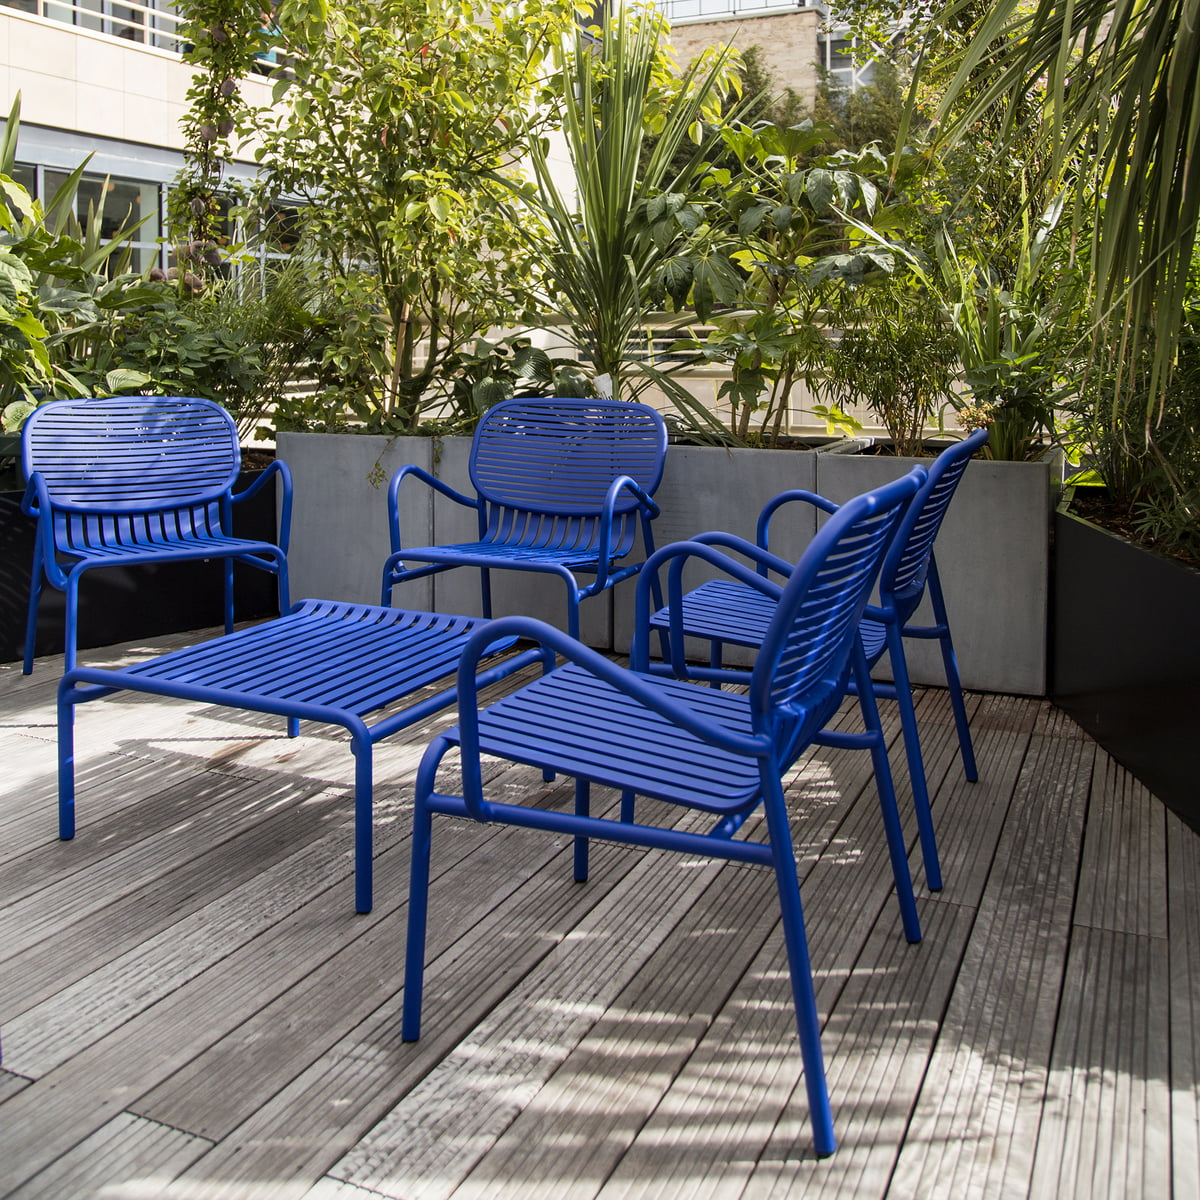 Garten Bank Week End Petite Friture Connox